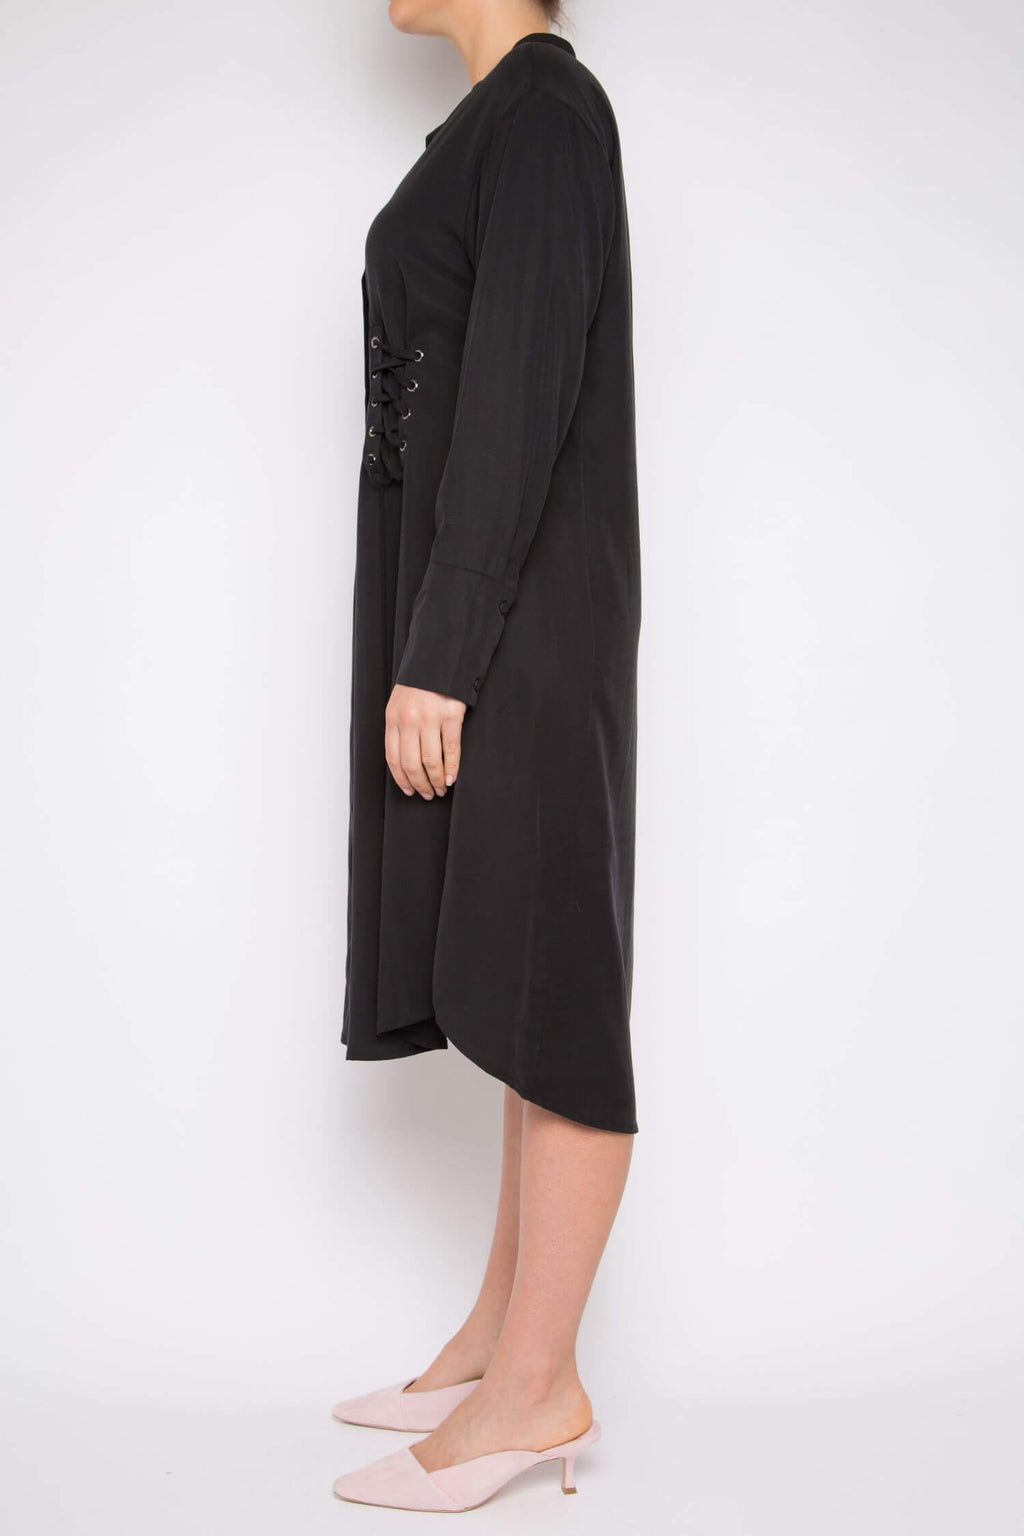 Muyu Dress in Black